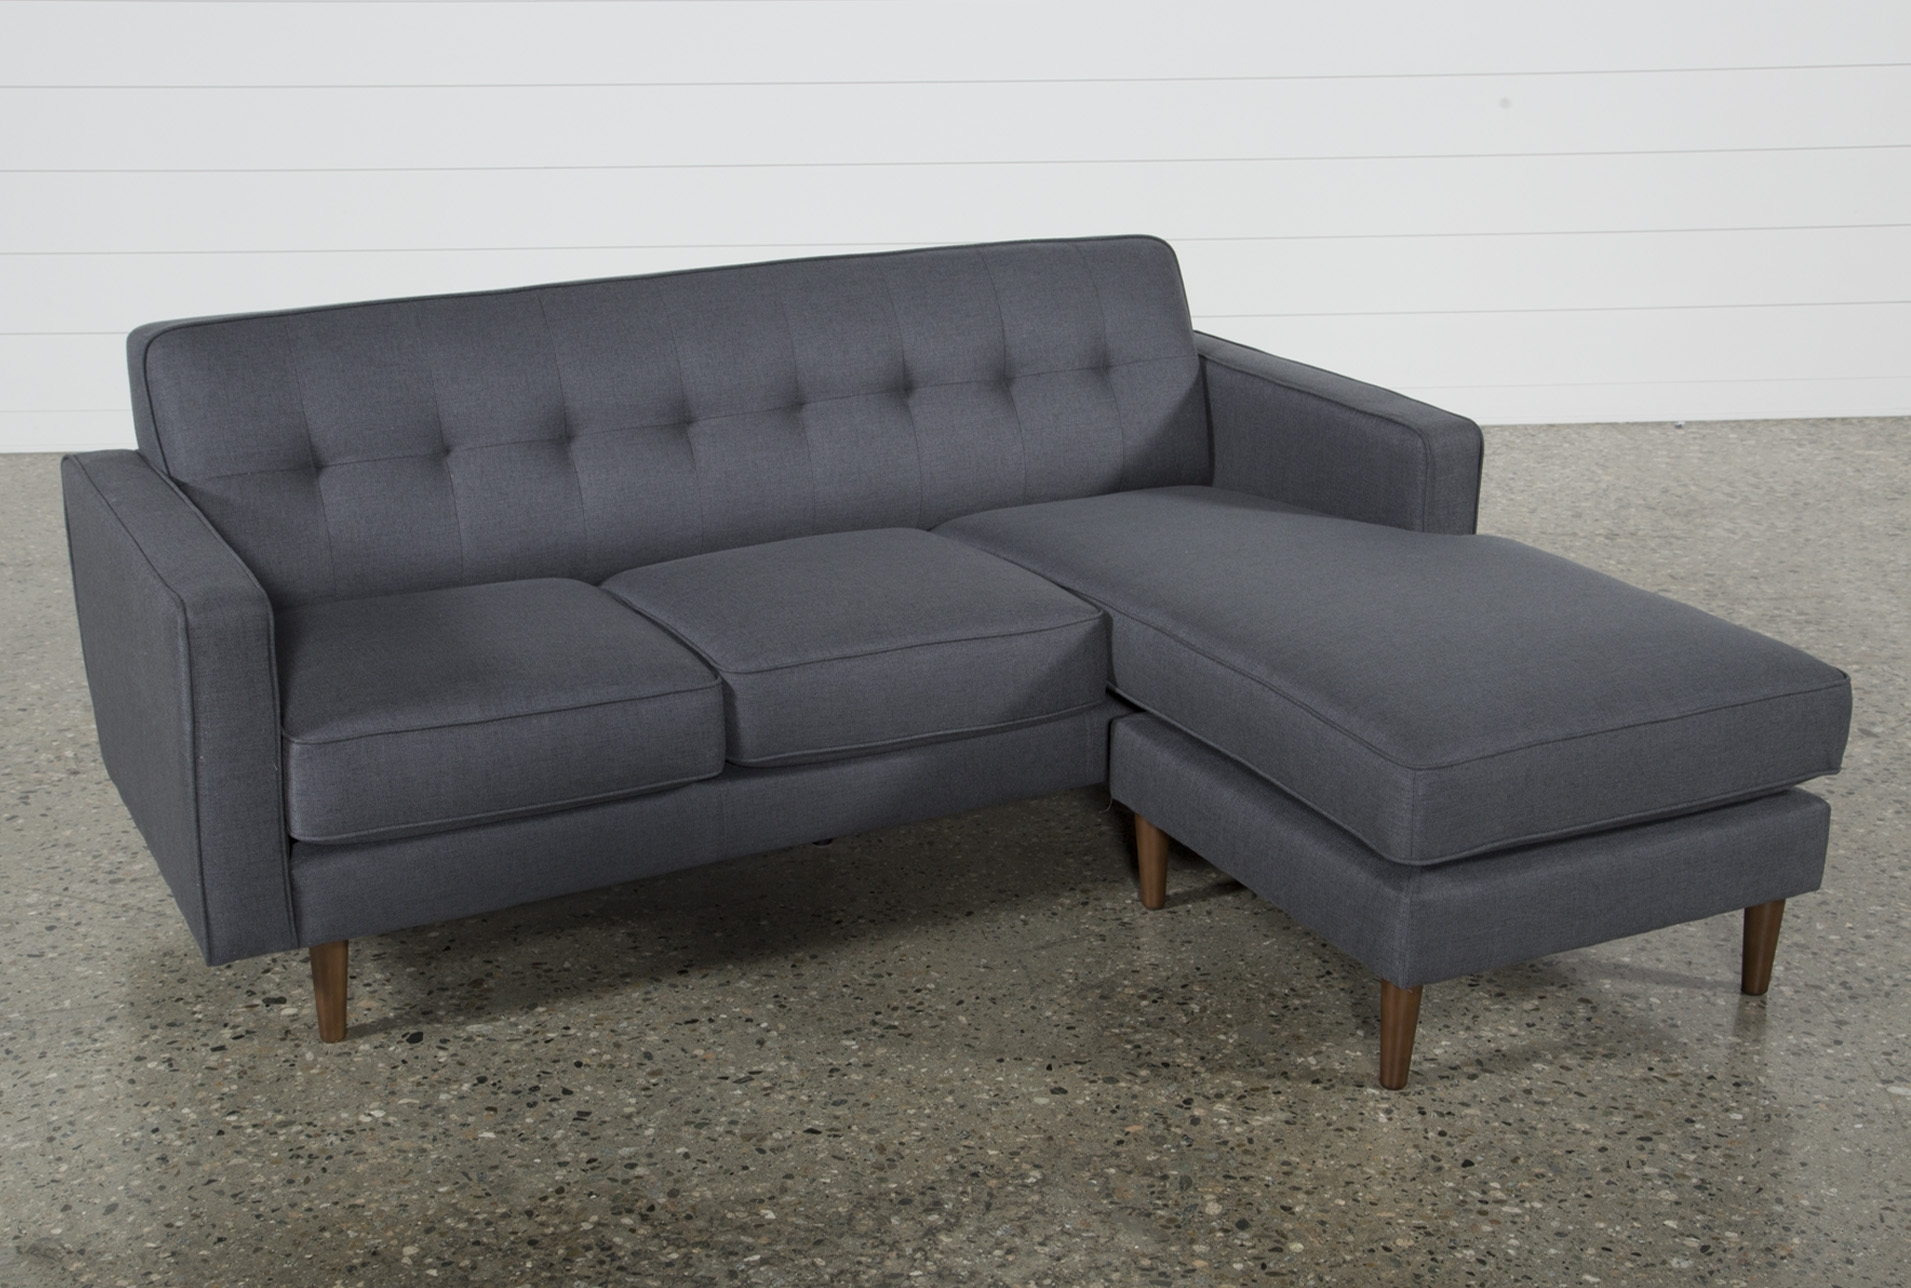 London Dark Grey Reversible Sofa Chaise | Products | Pinterest Pertaining To London Optical Reversible Sofa Chaise Sectionals (Image 11 of 25)